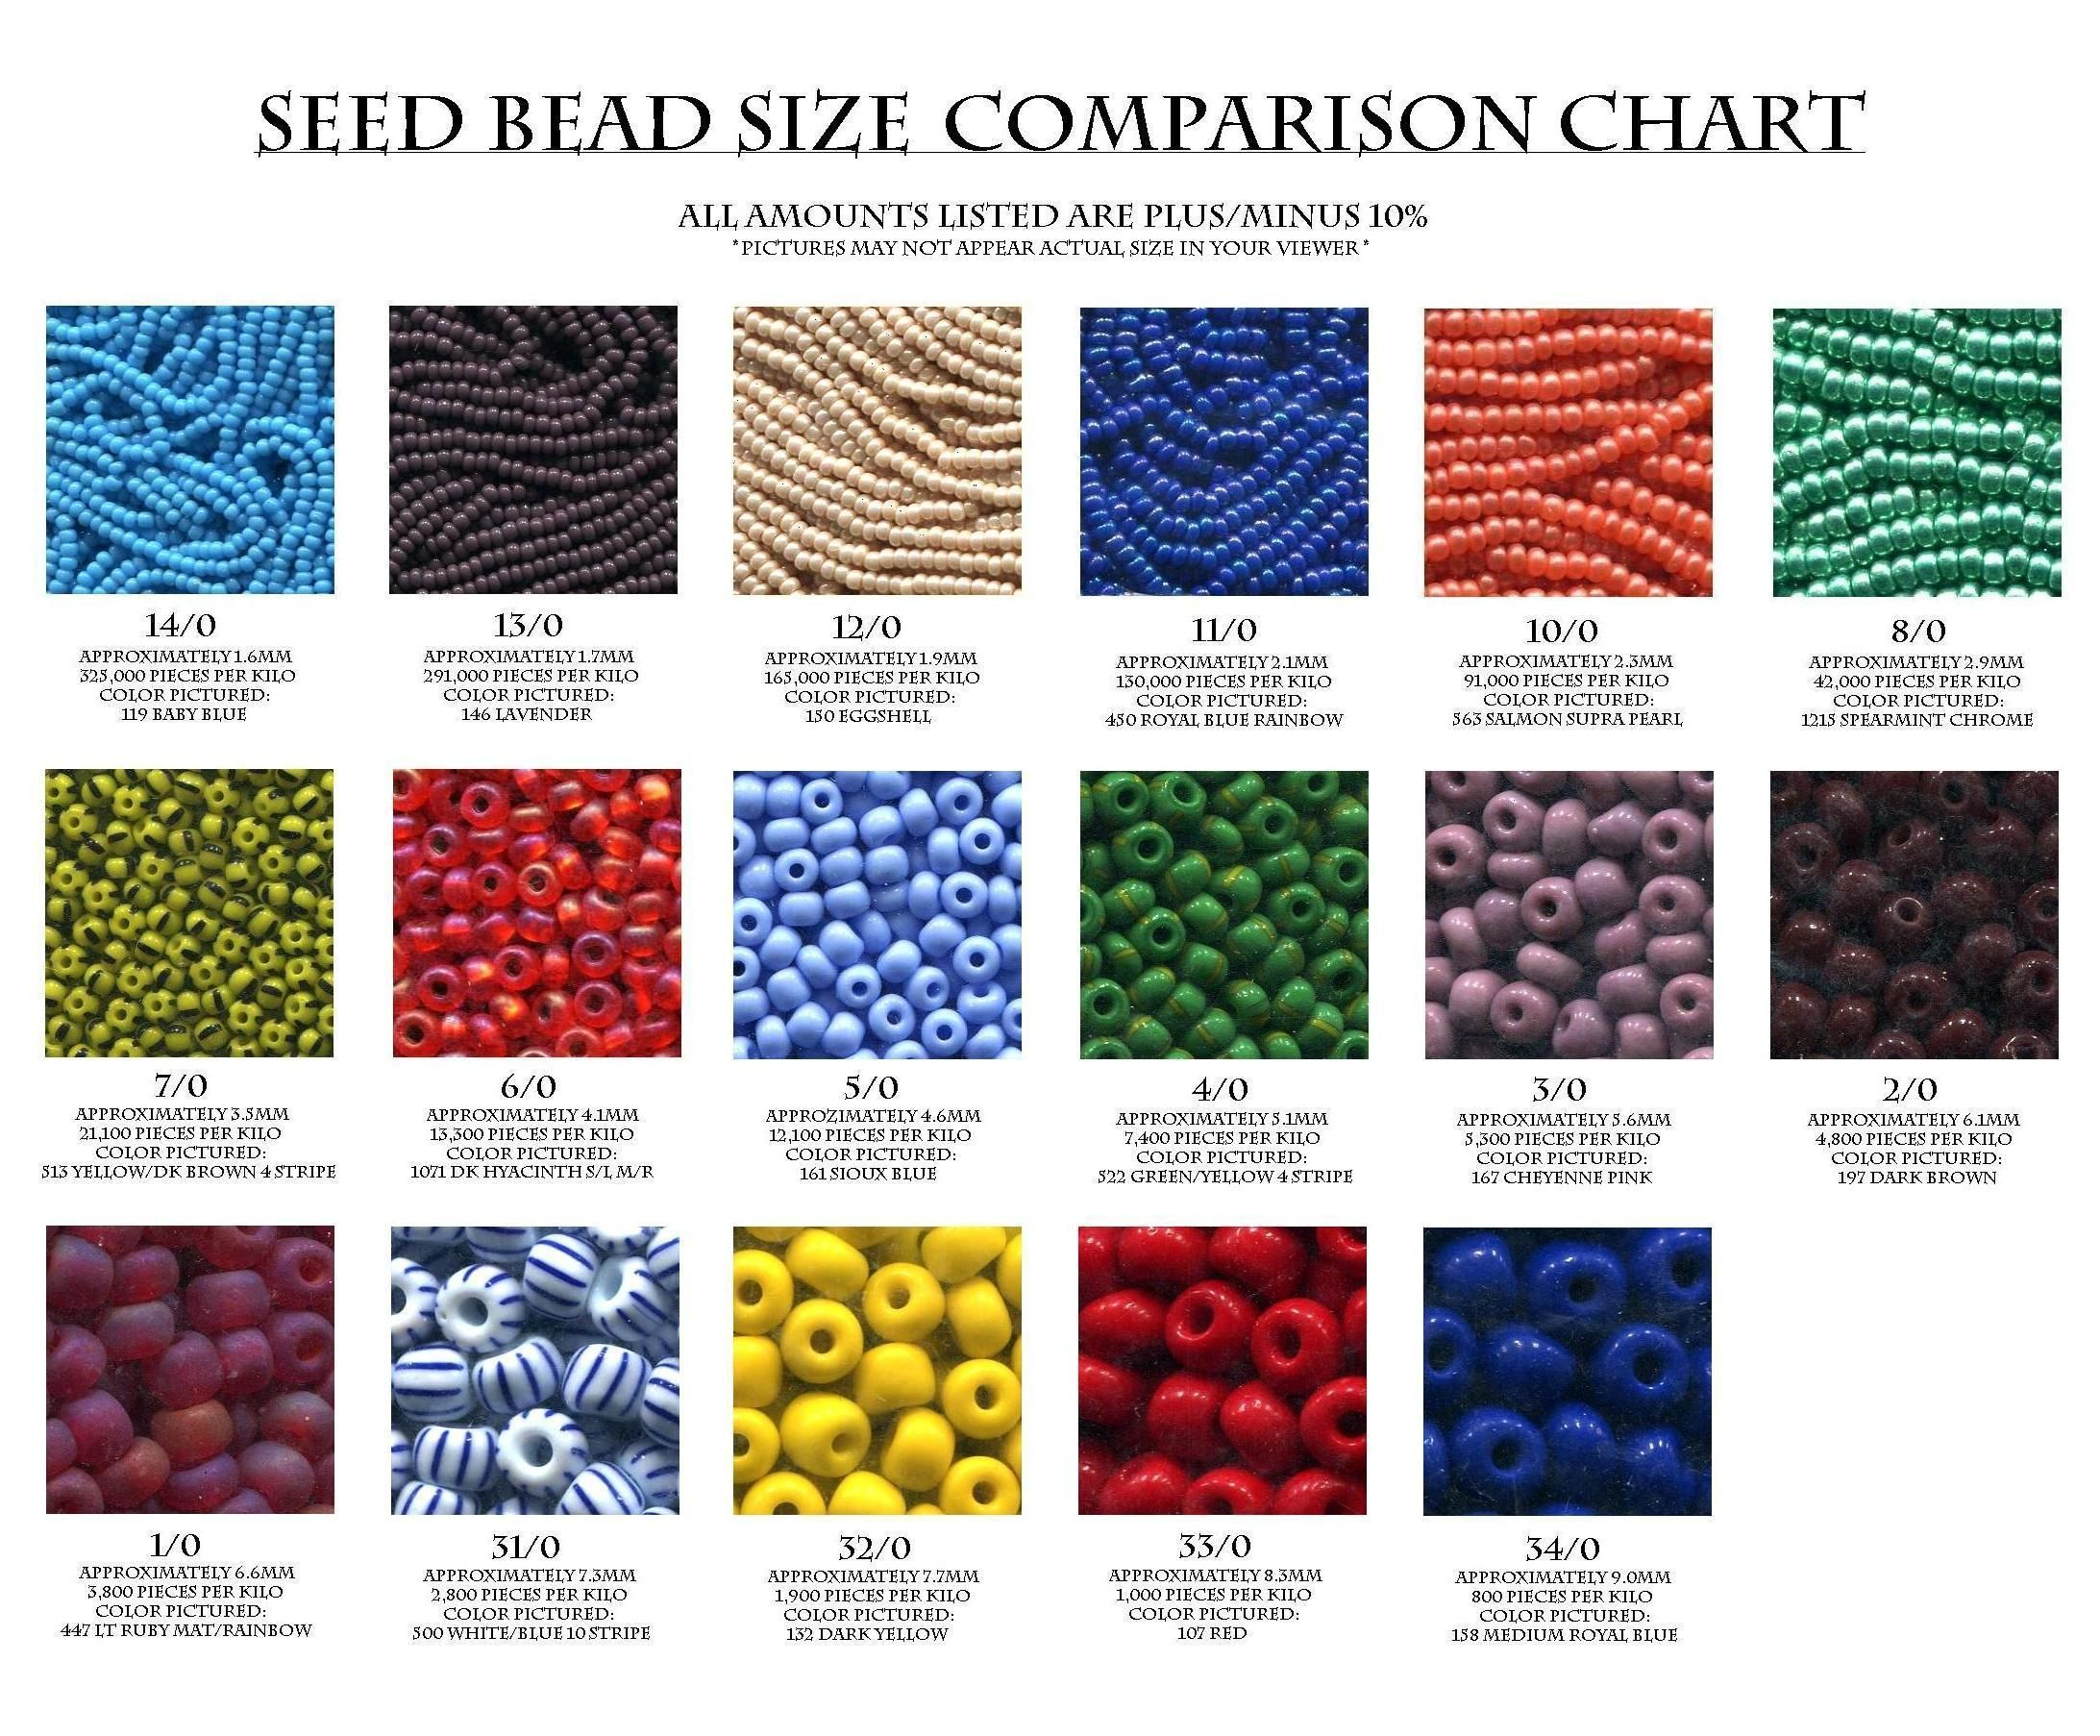 photo about Printable Seed Bead Size Chart titled Seed Bead Sizing Comparison Chart Applications Bead dimension chart